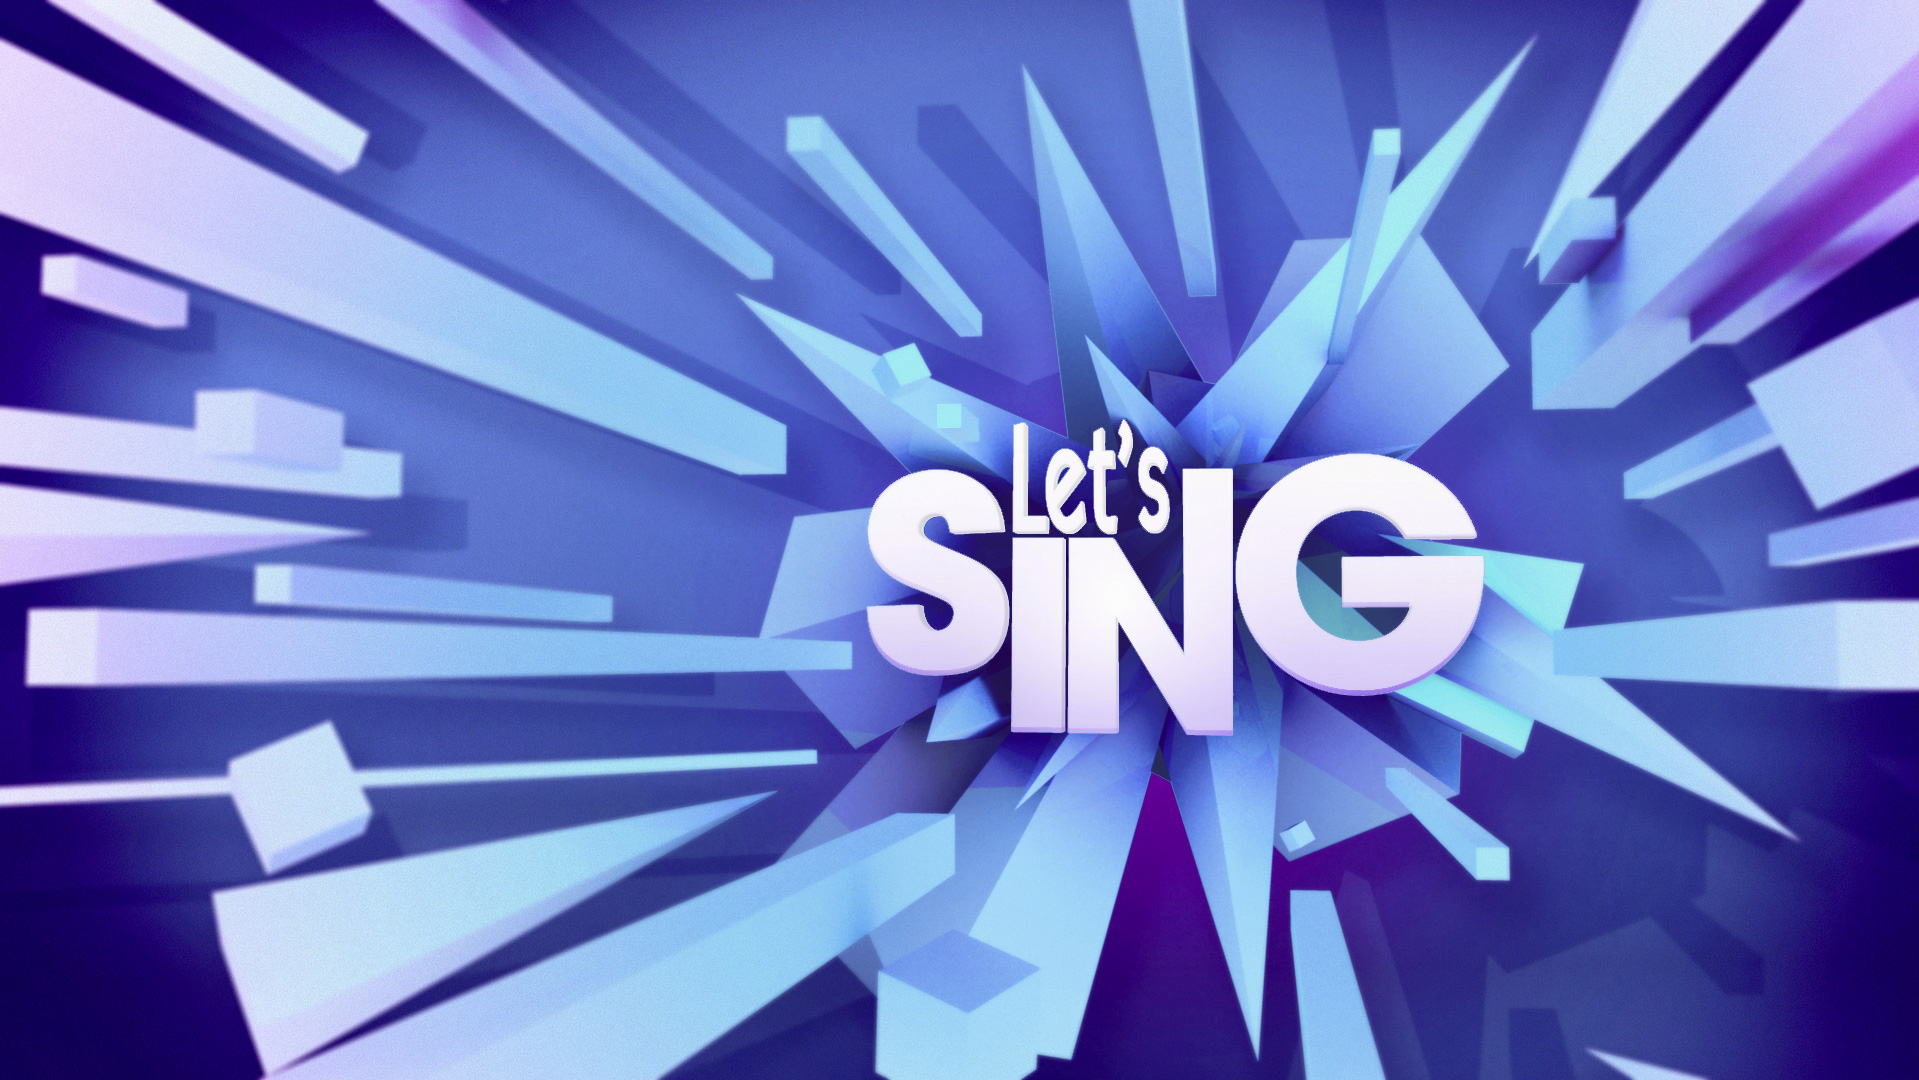 Lets Sing   Lets Sing wallpaper 02 Steam Trading Cards Wiki 1919x1080